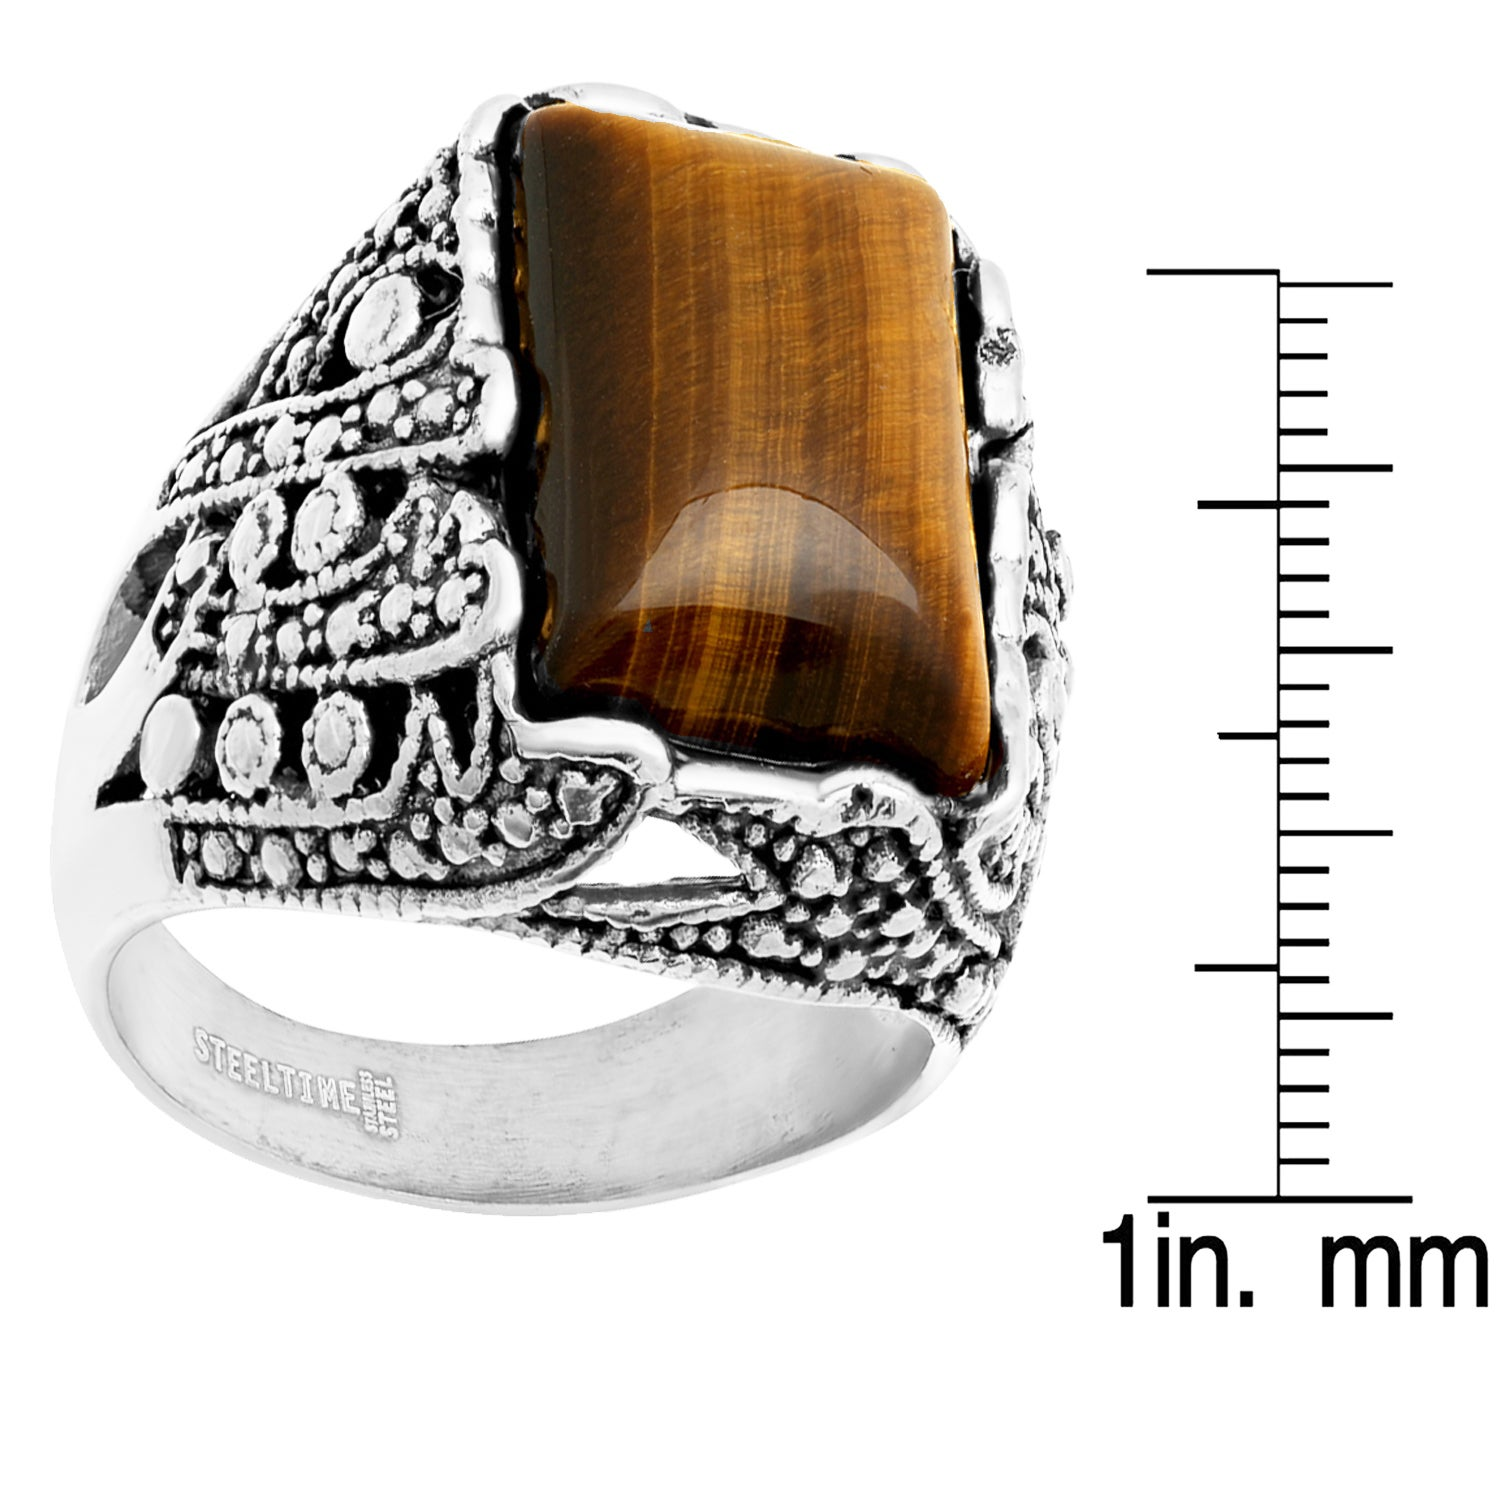 rings vince tigers eye gold gallery ring camuto stone product in lyst metallic goldtigers normal adjustable jewelry